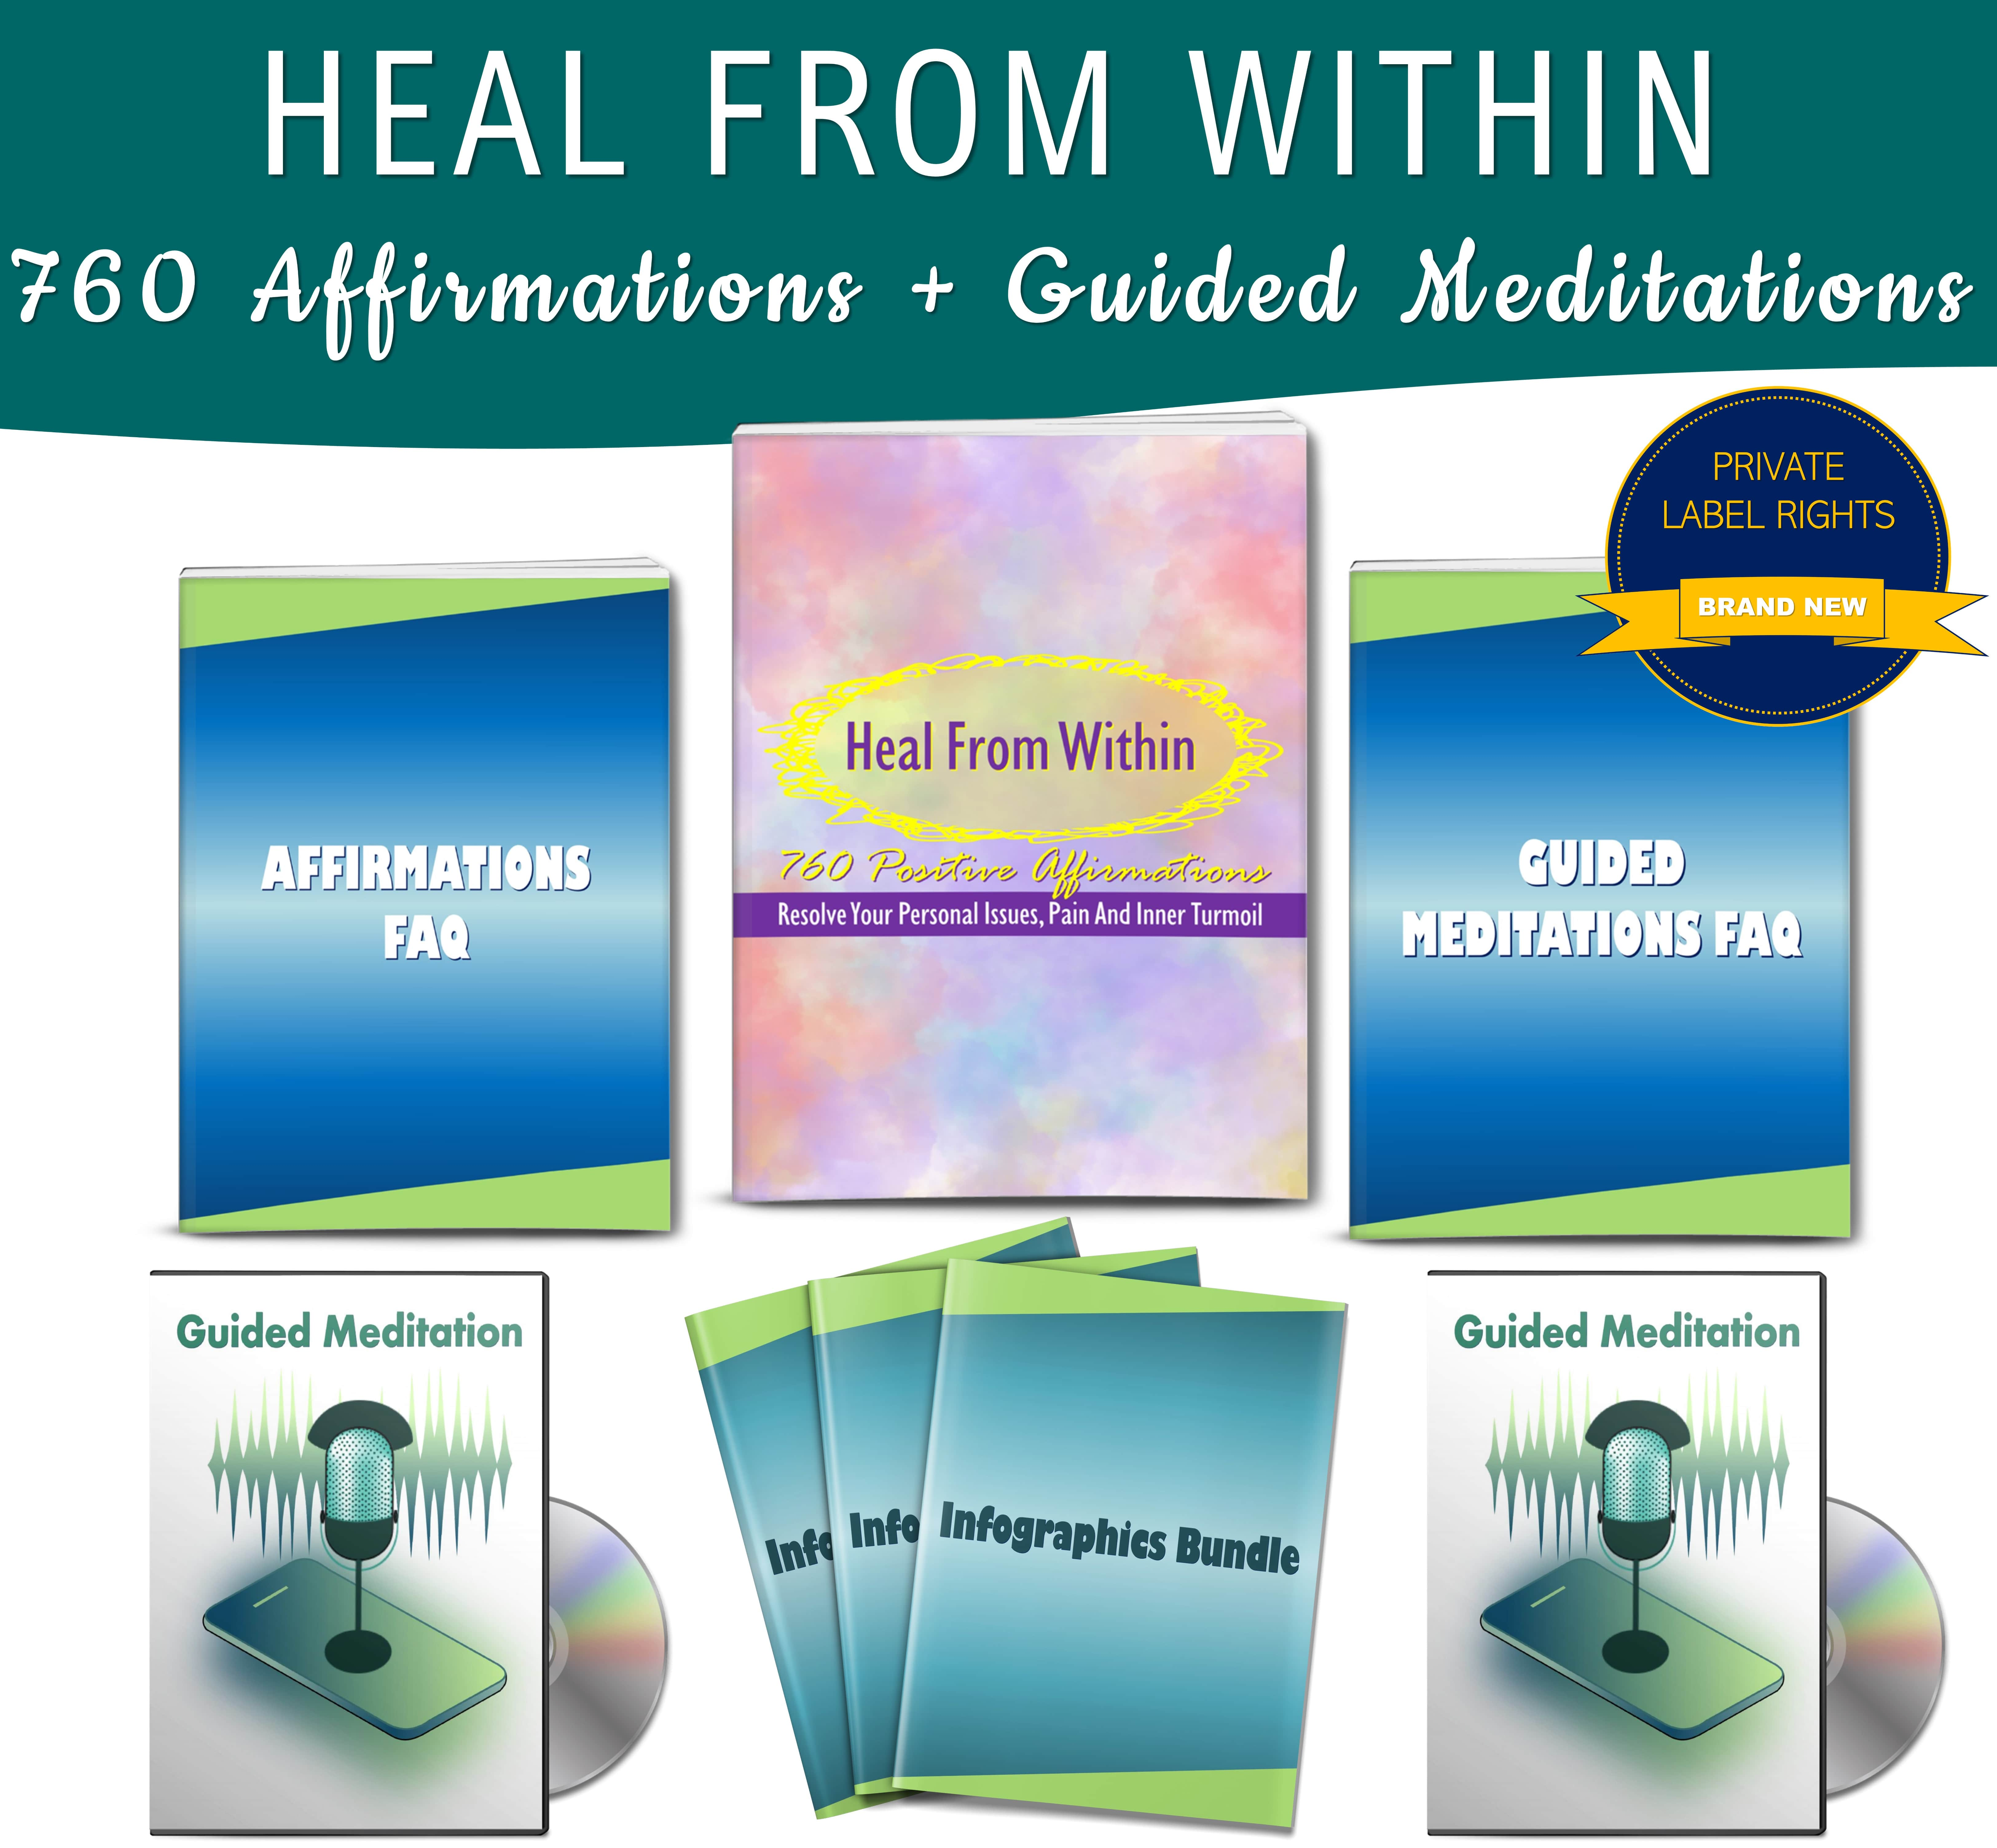 Heal From Within: 760 Positive Affirmations  + Guided Meditations PLR JV